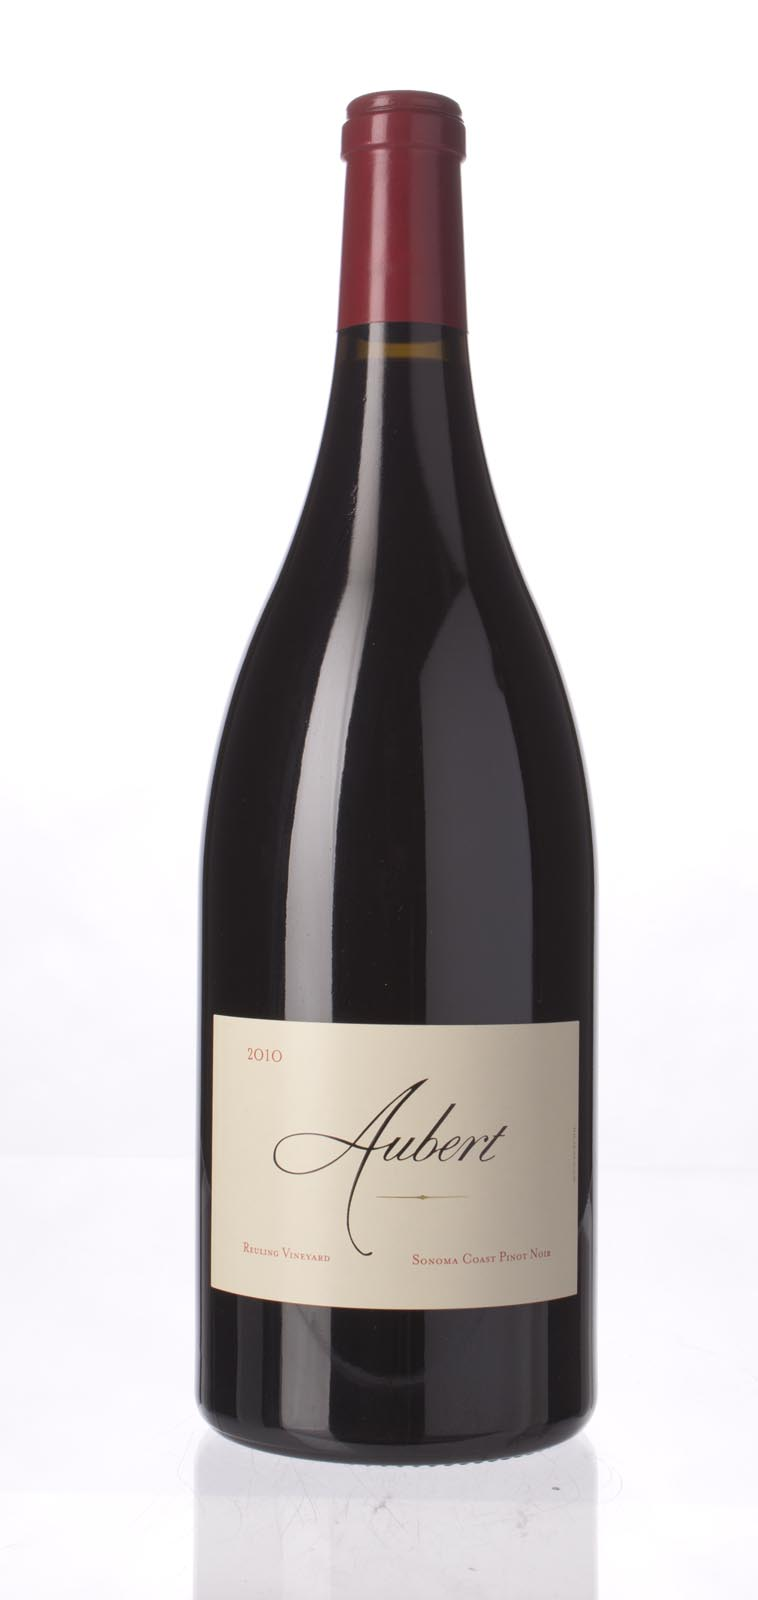 Aubert Pinot Noir Reuling Vineyard 2010, 1.5L () from The BPW - Merchants of rare and fine wines.